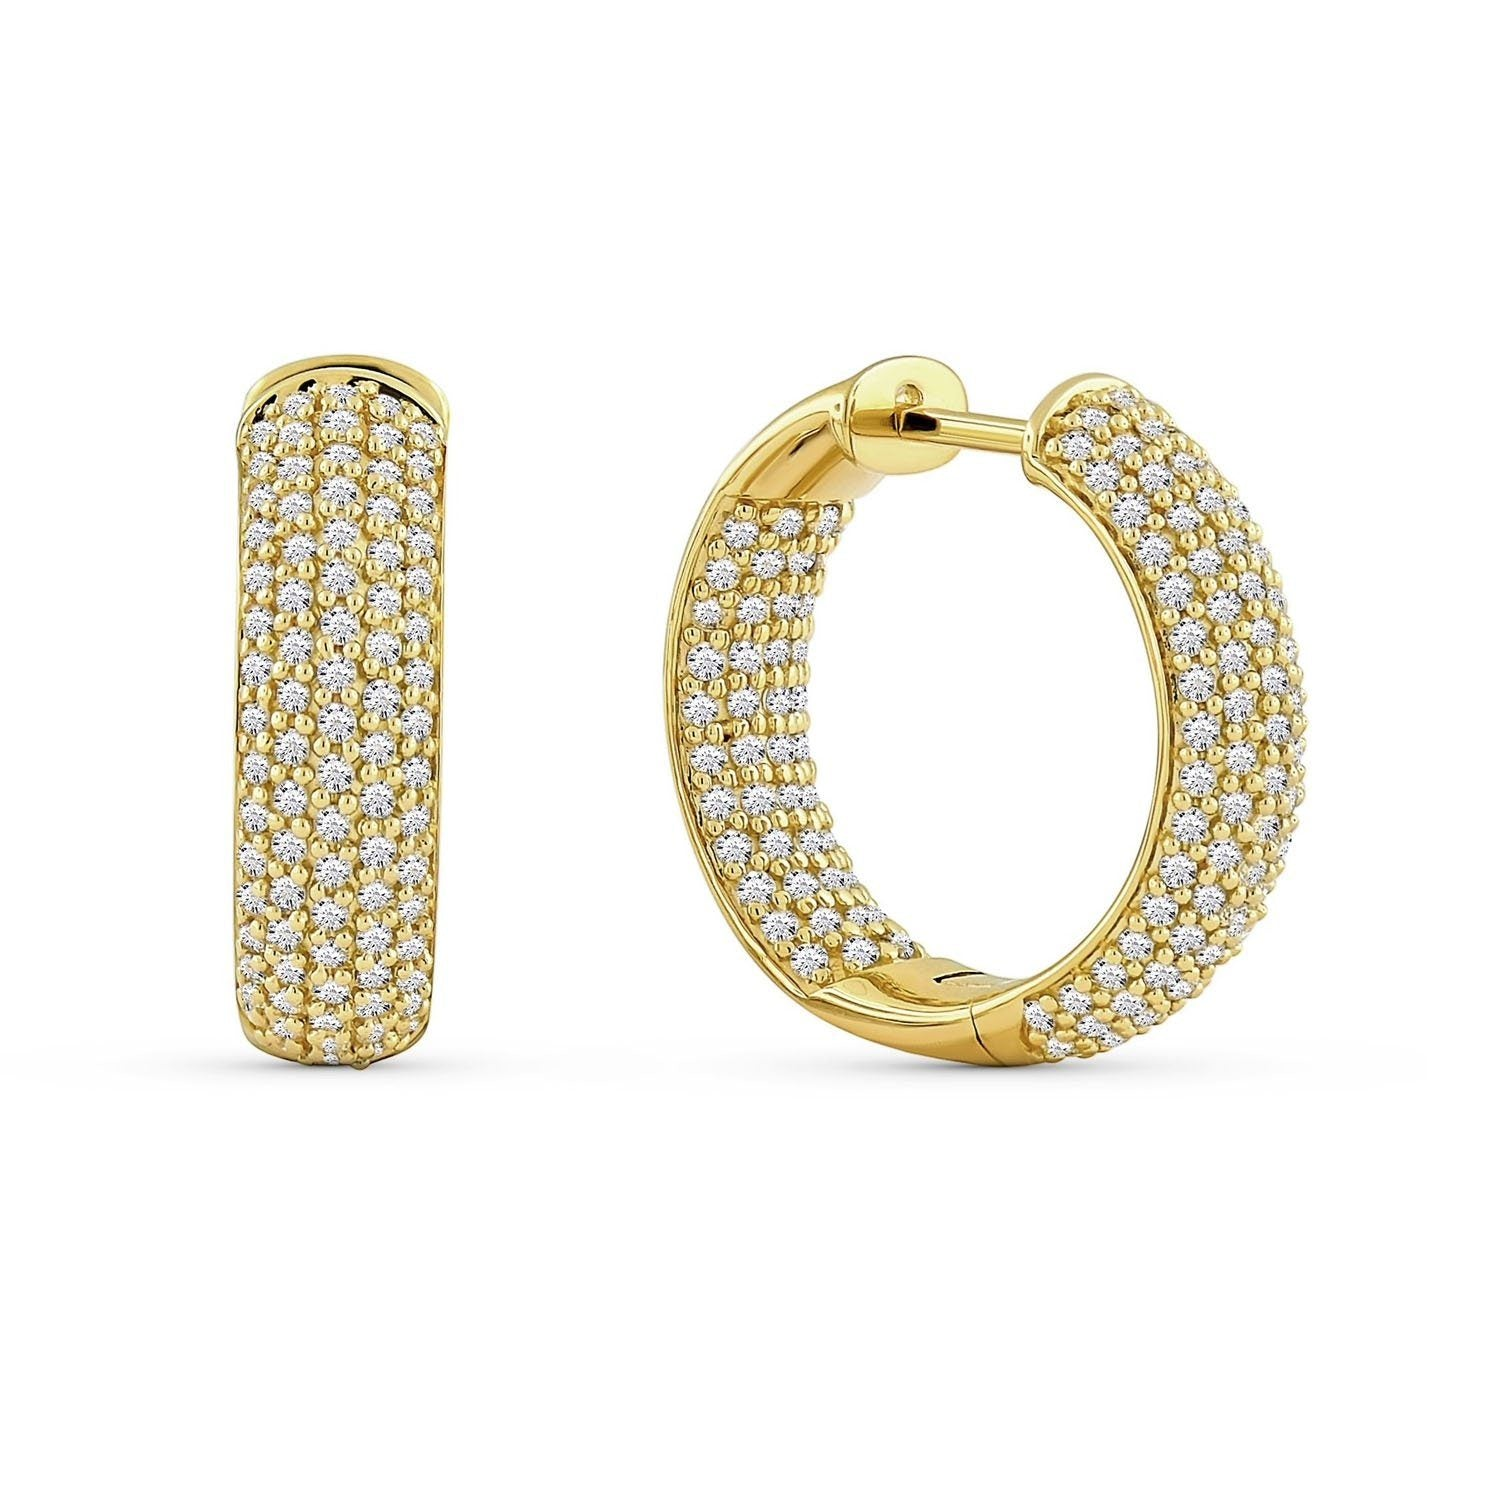 3.00 Carat Diamond Hoops Earrings in 10K Yellow Gold